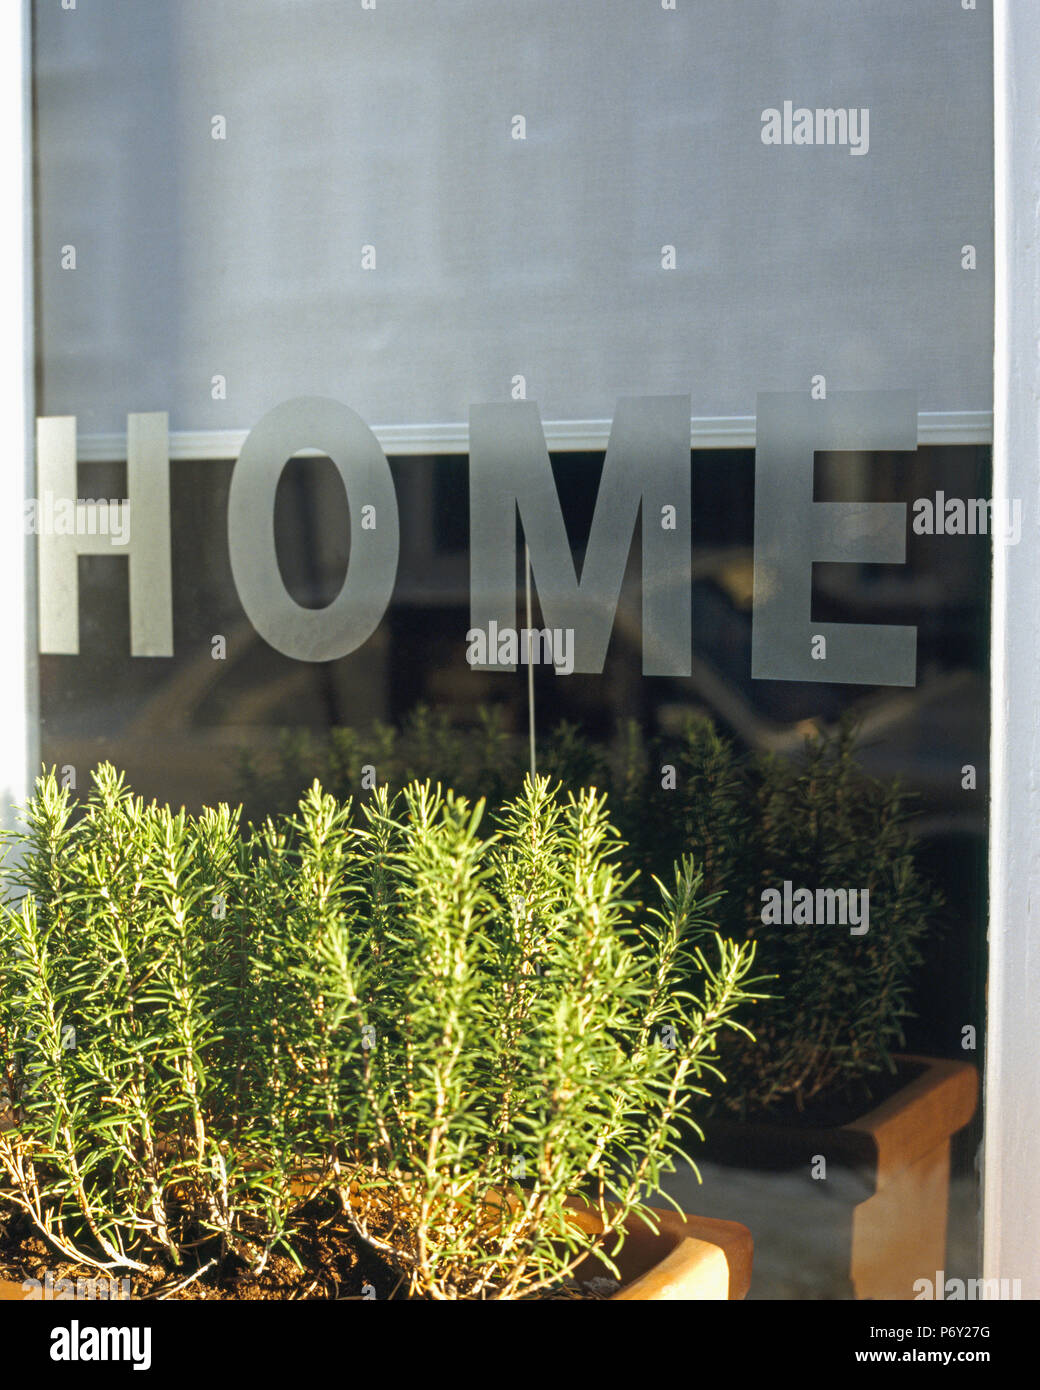 Close-up of rosemary in window box in front of window with engraved Home' motif - Stock Image